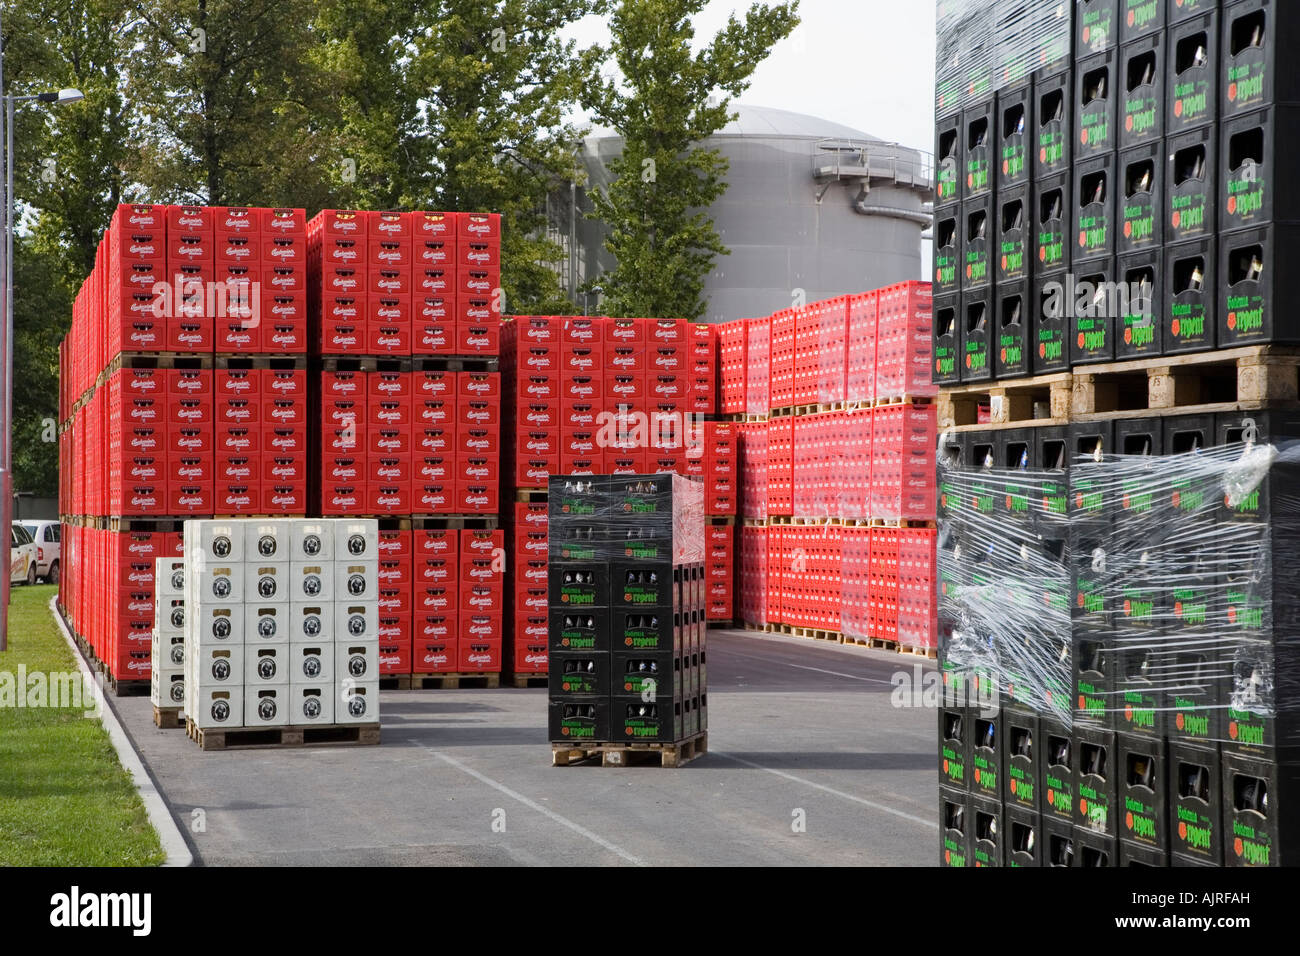 Stacked crates of Budweiser beer at the Budvar brewery Ceske Budejovice Czech Republic - Stock Image